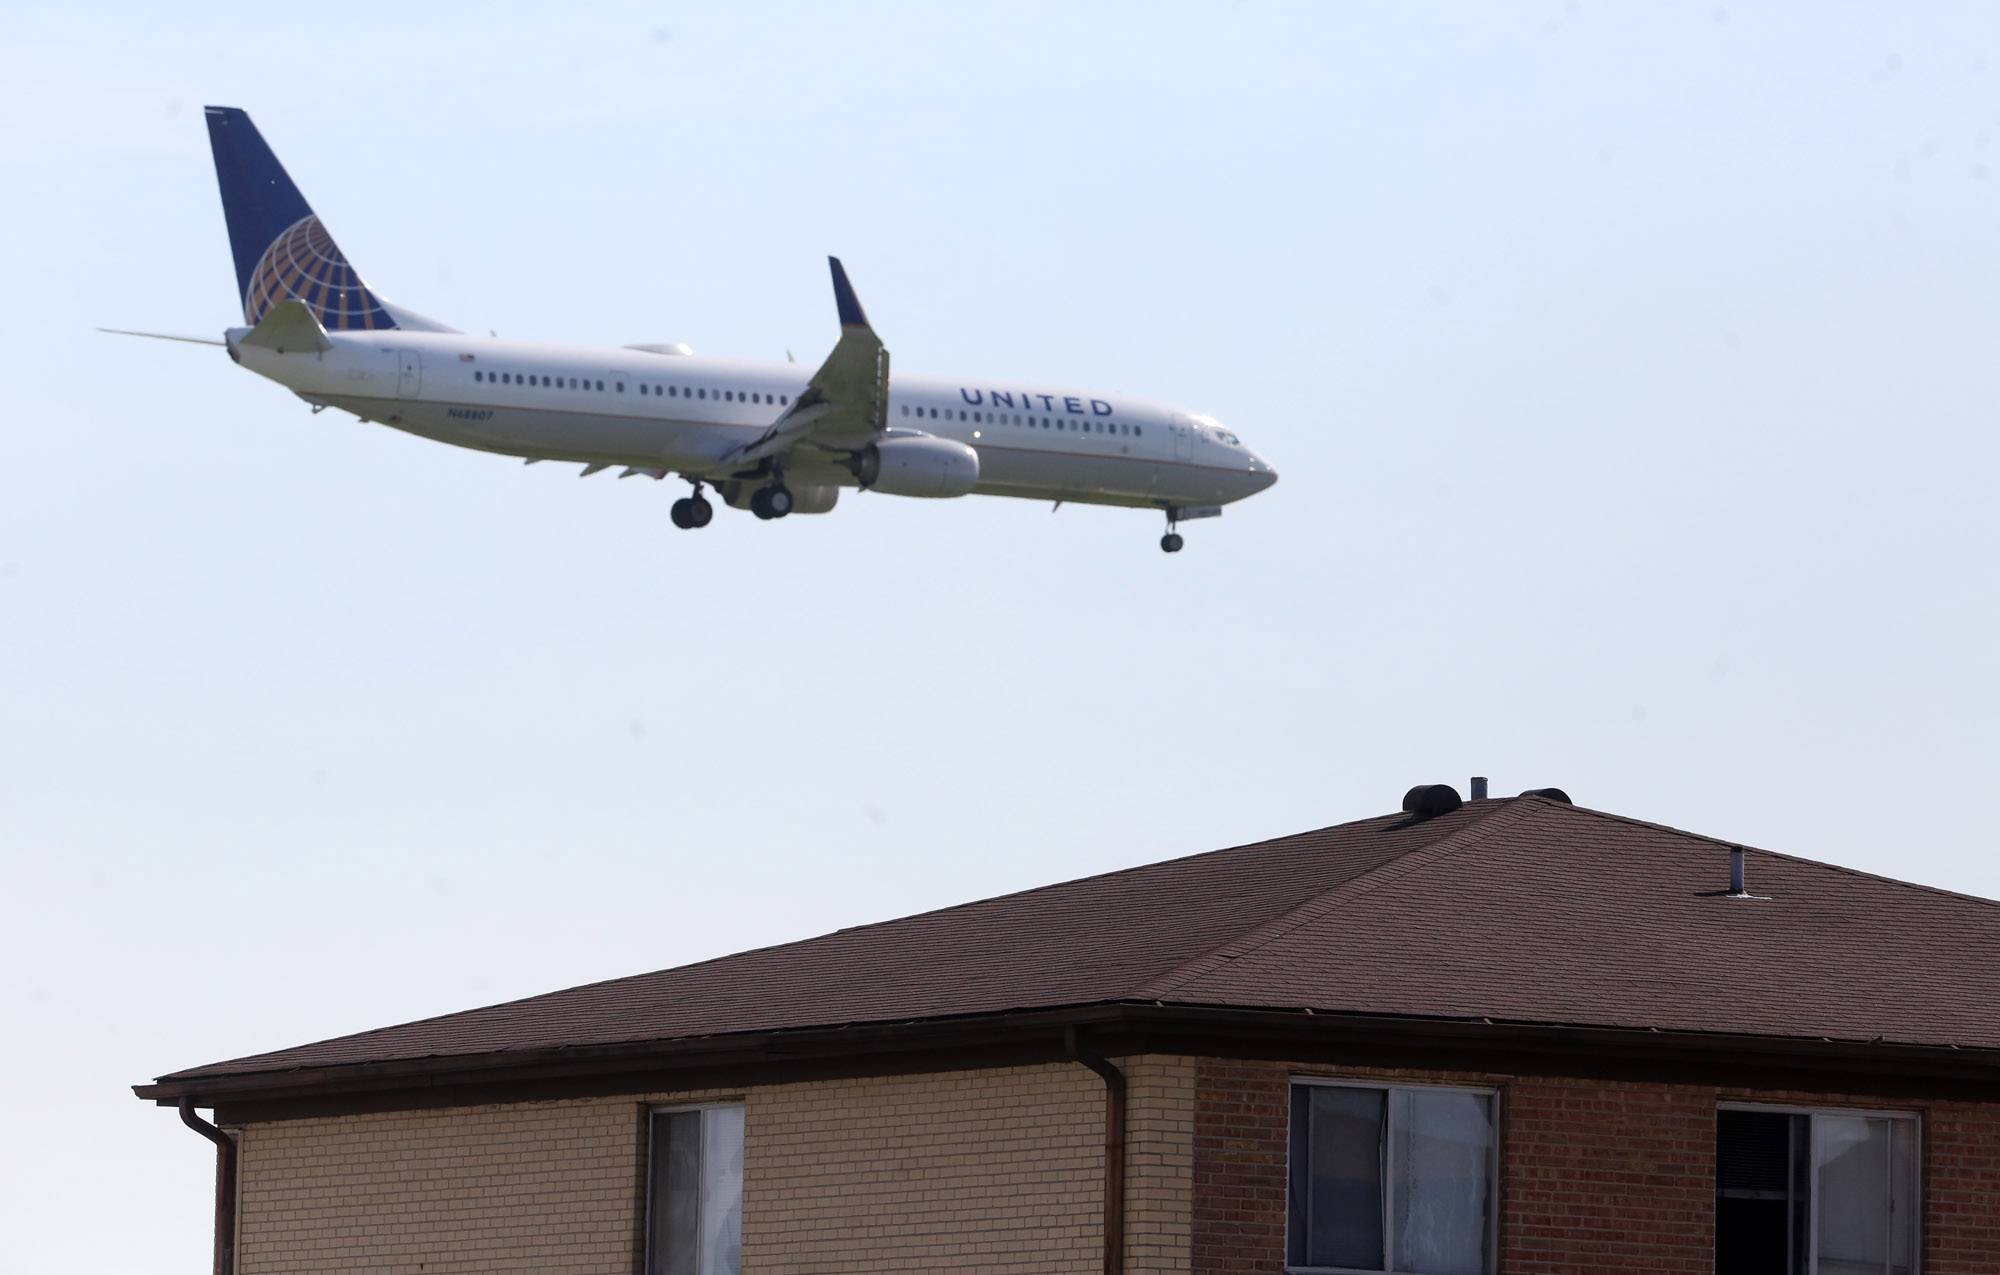 Latest overnight O'Hare noise rotation leaves out major diagonal runway